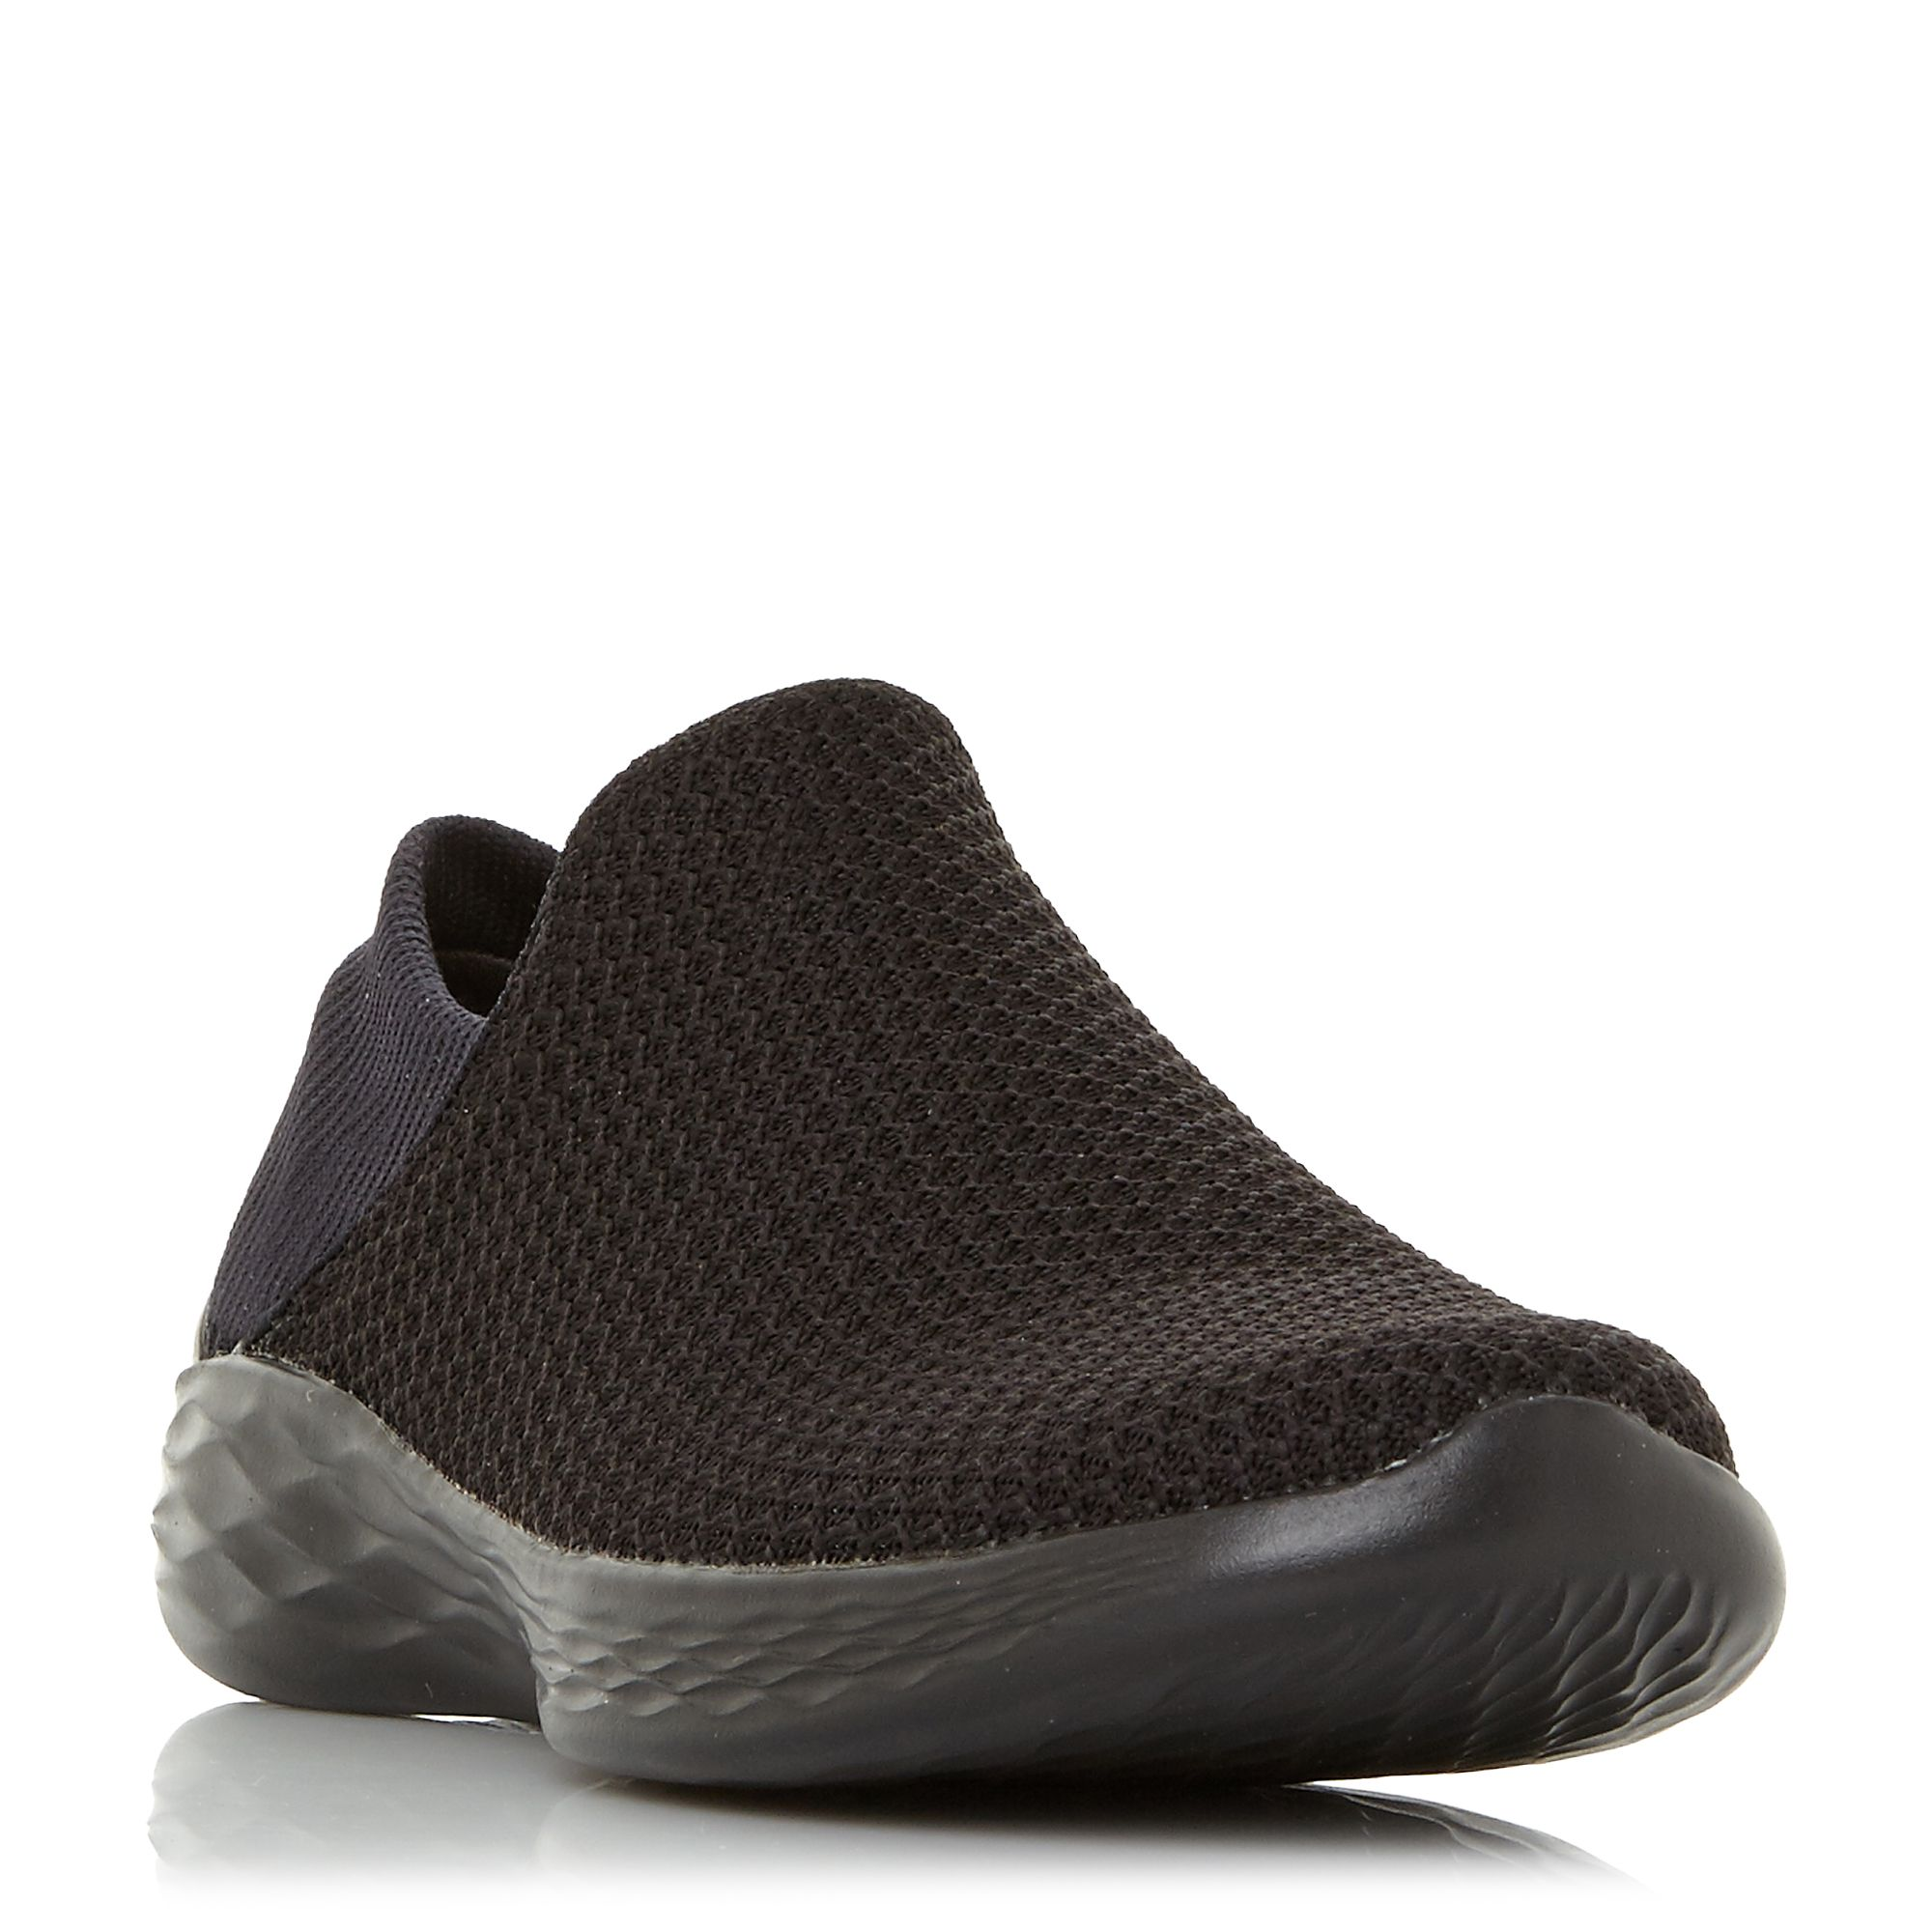 Skechers You Gore Slip On Trainers, Black